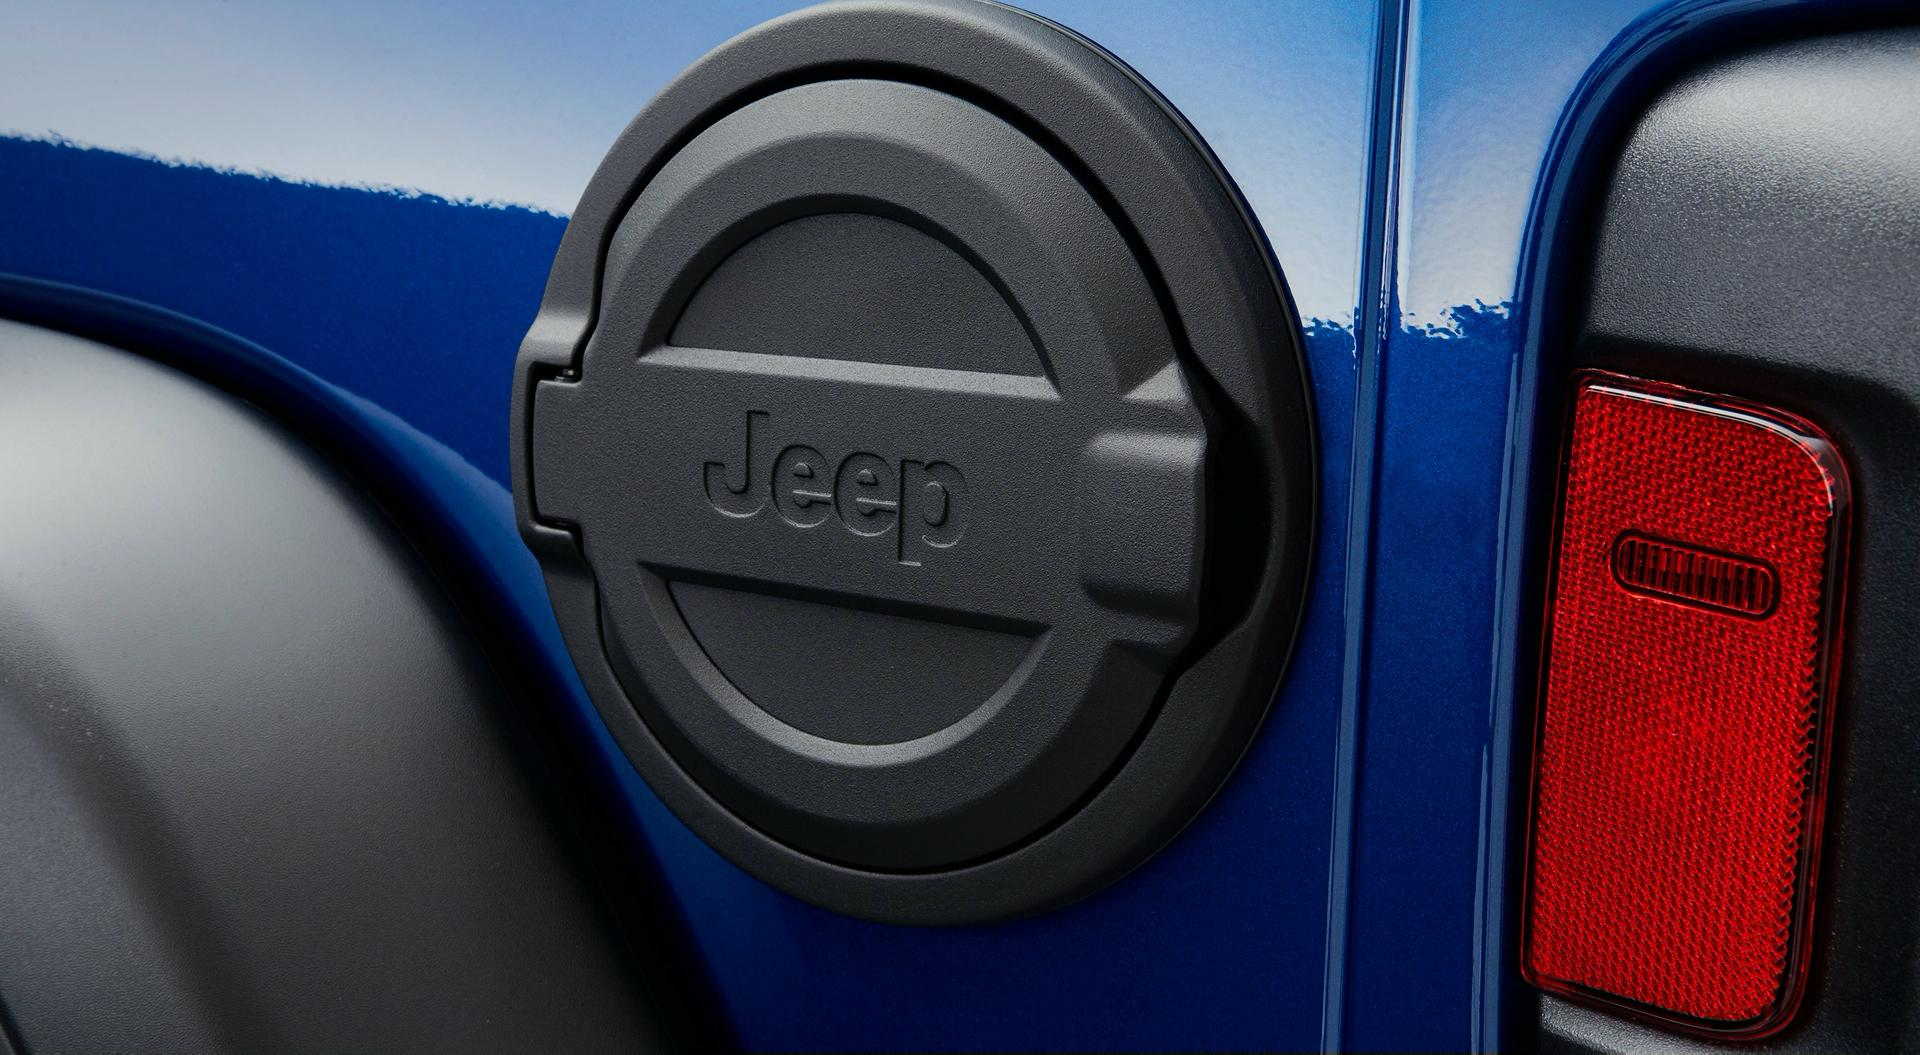 Jeep-Wrangler-JPP-20-Limited-Edition-10